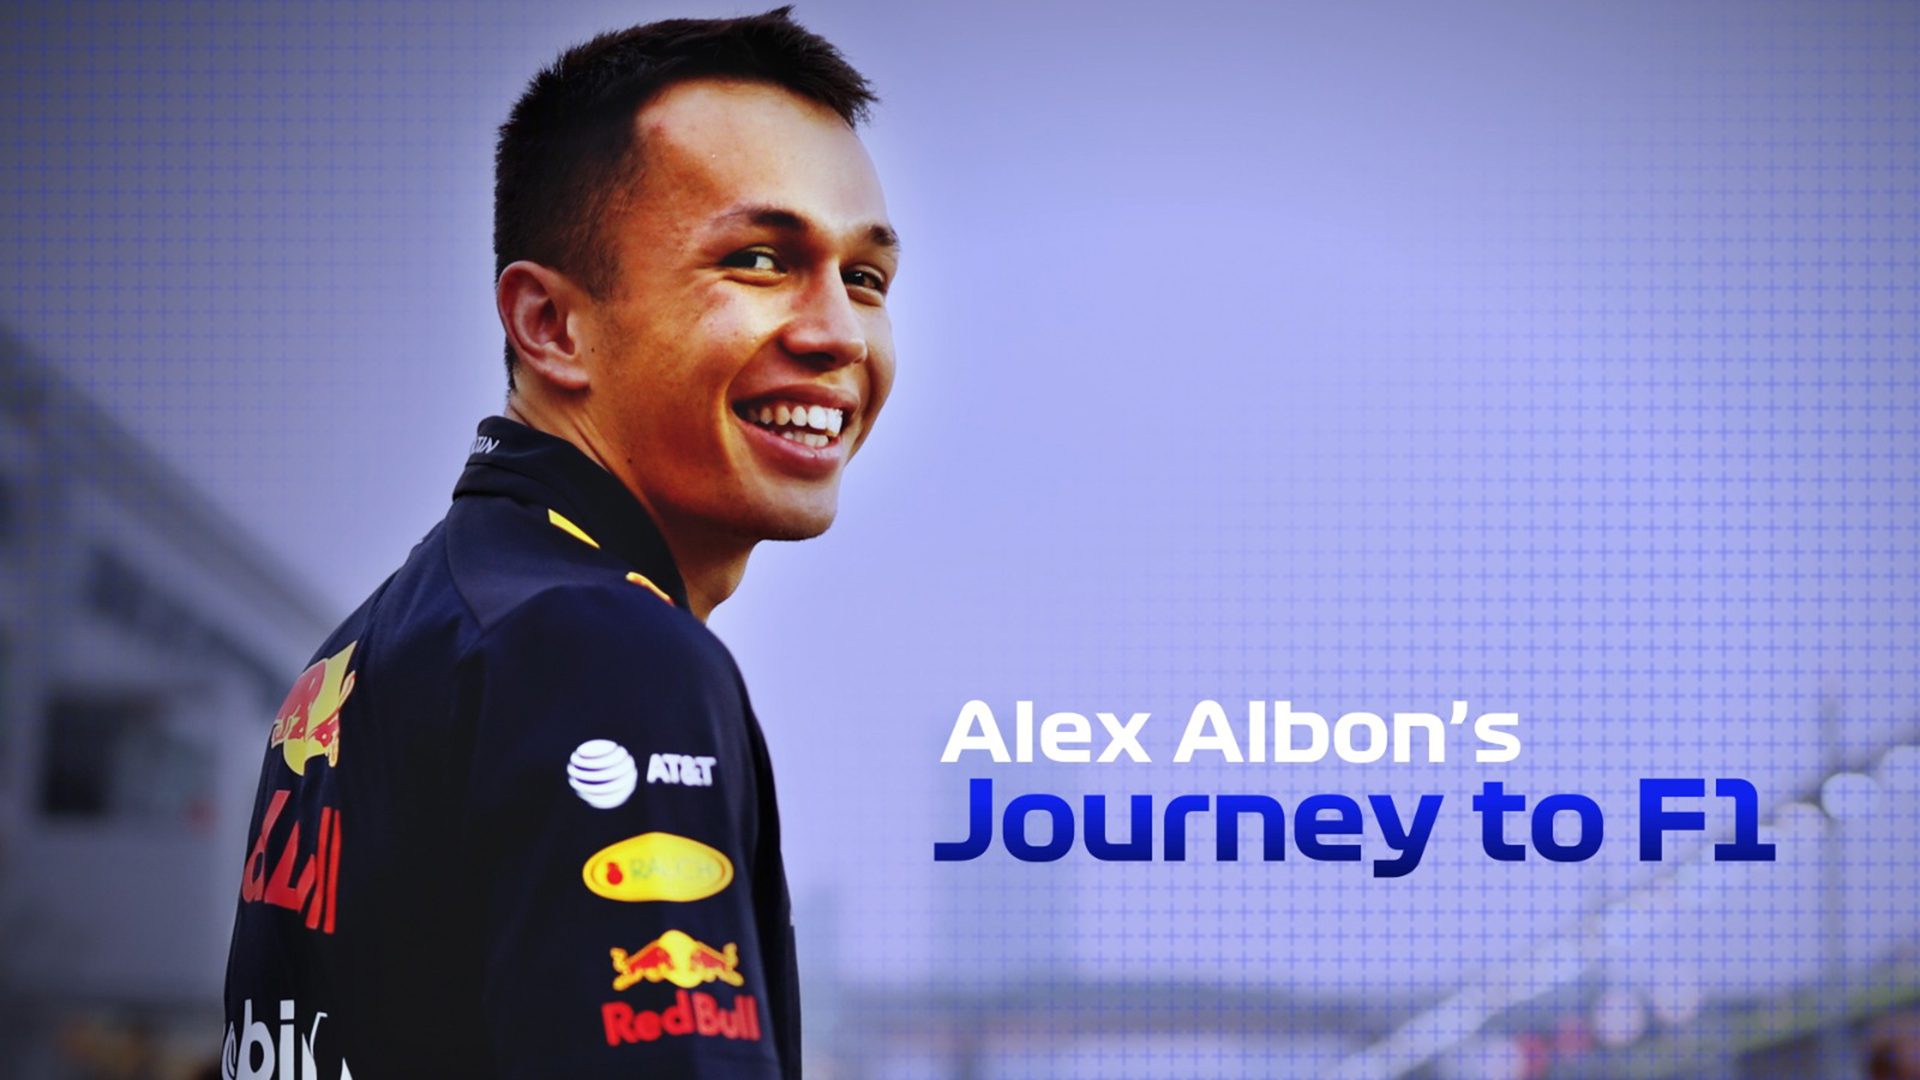 Alexander Albon's roller coaster journey to F1